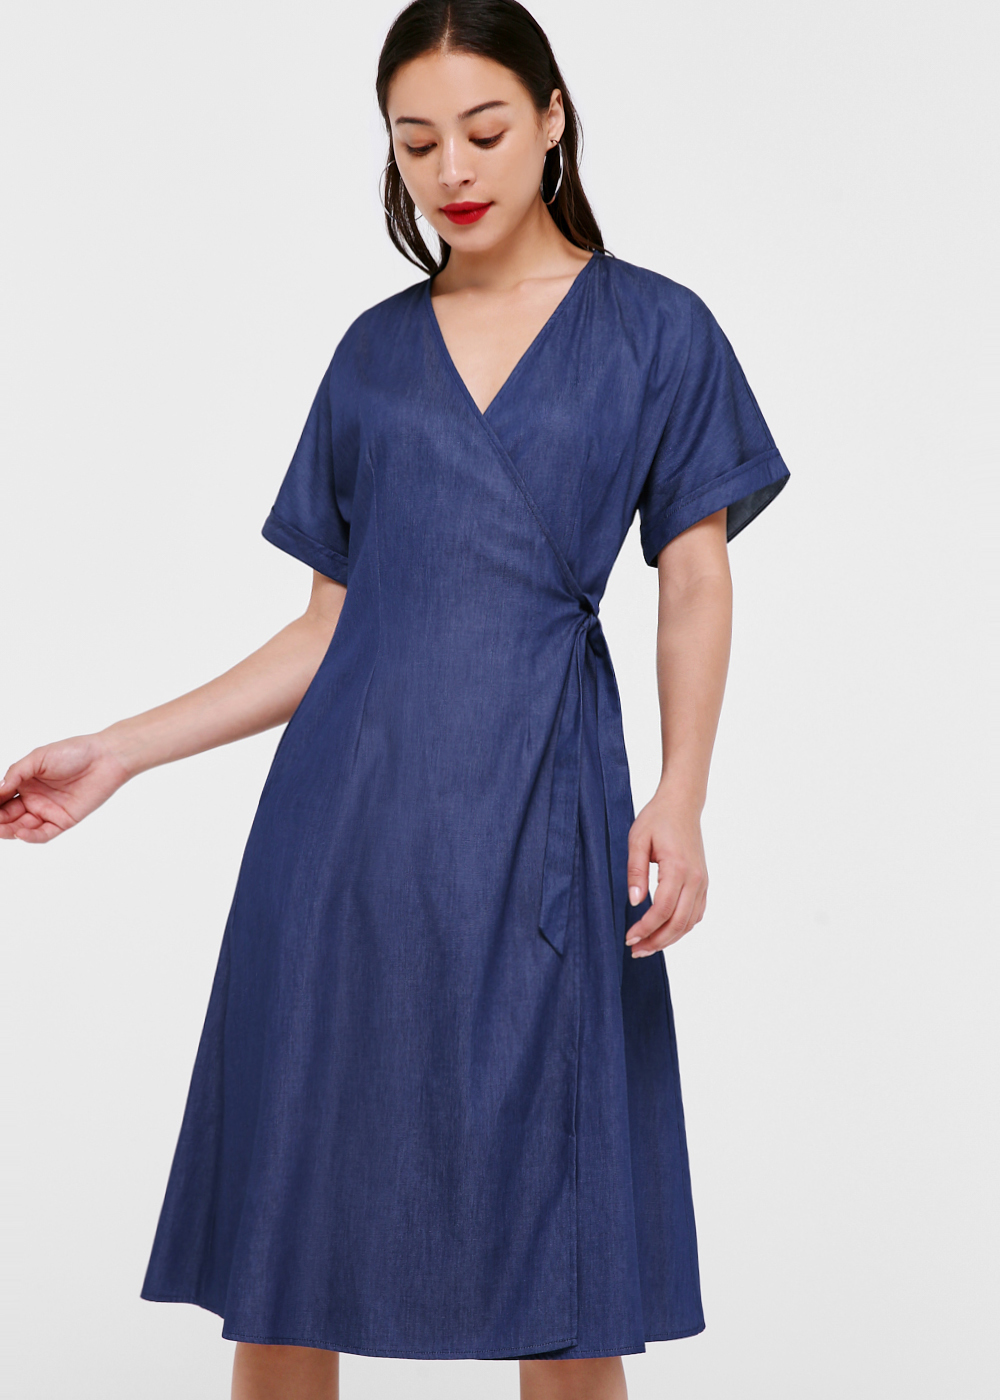 Venice Midi Denim Wrap Dress